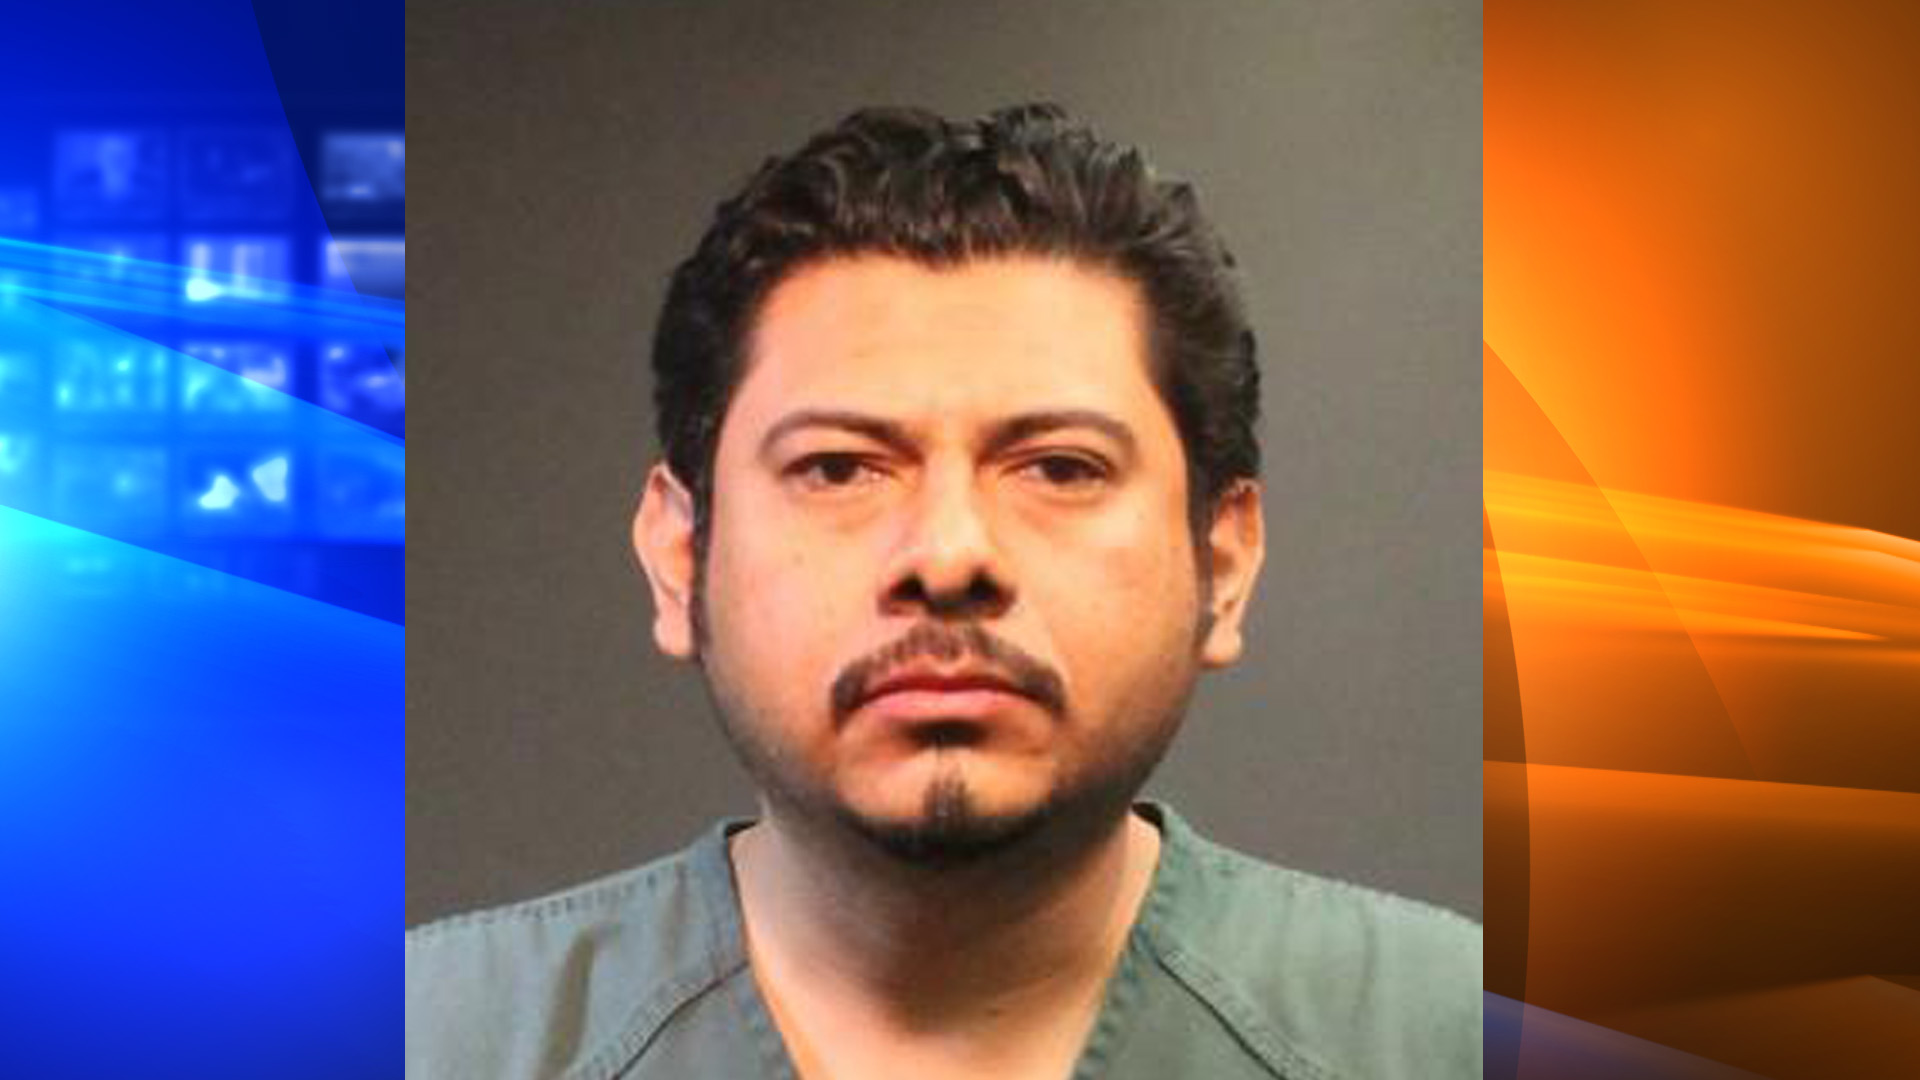 Antonio Davila is seen in a booking photo provided by the Santa Ana Police Department on May 24, 2018.